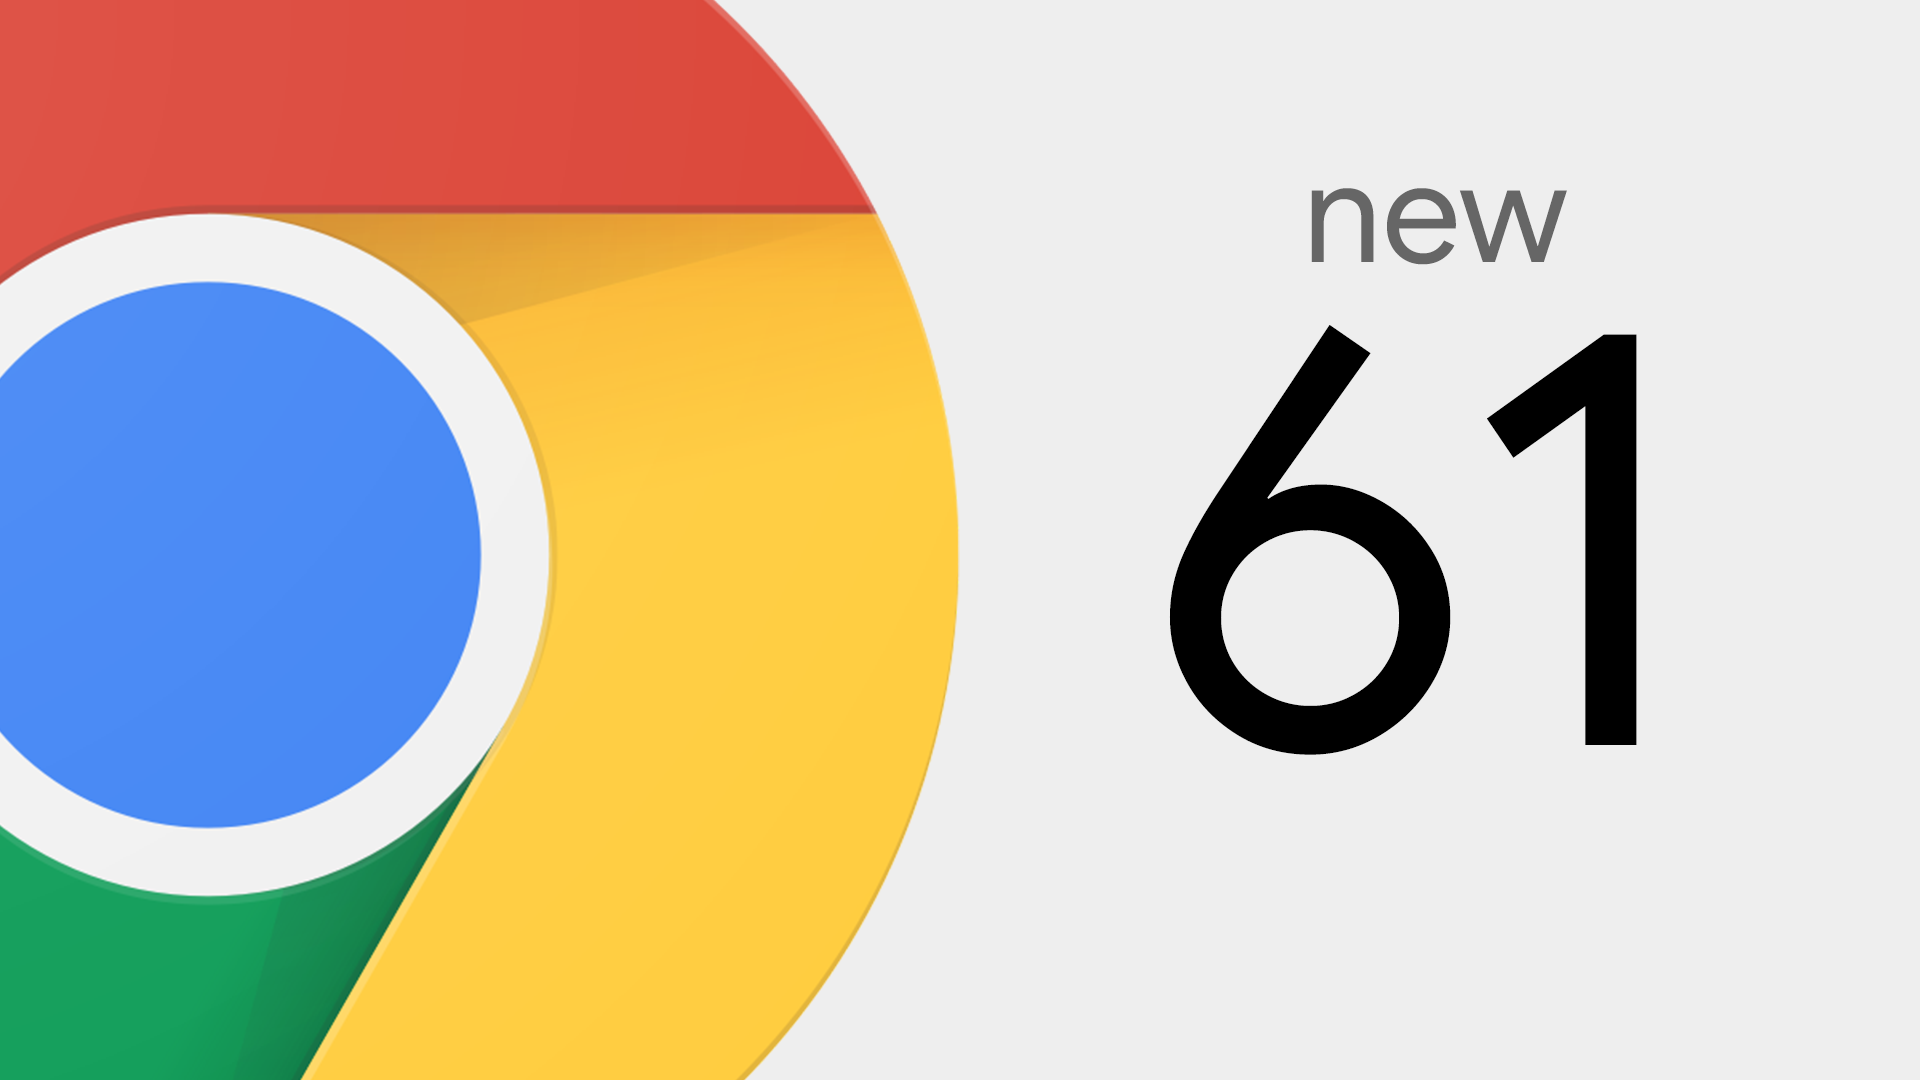 New in Chrome 61